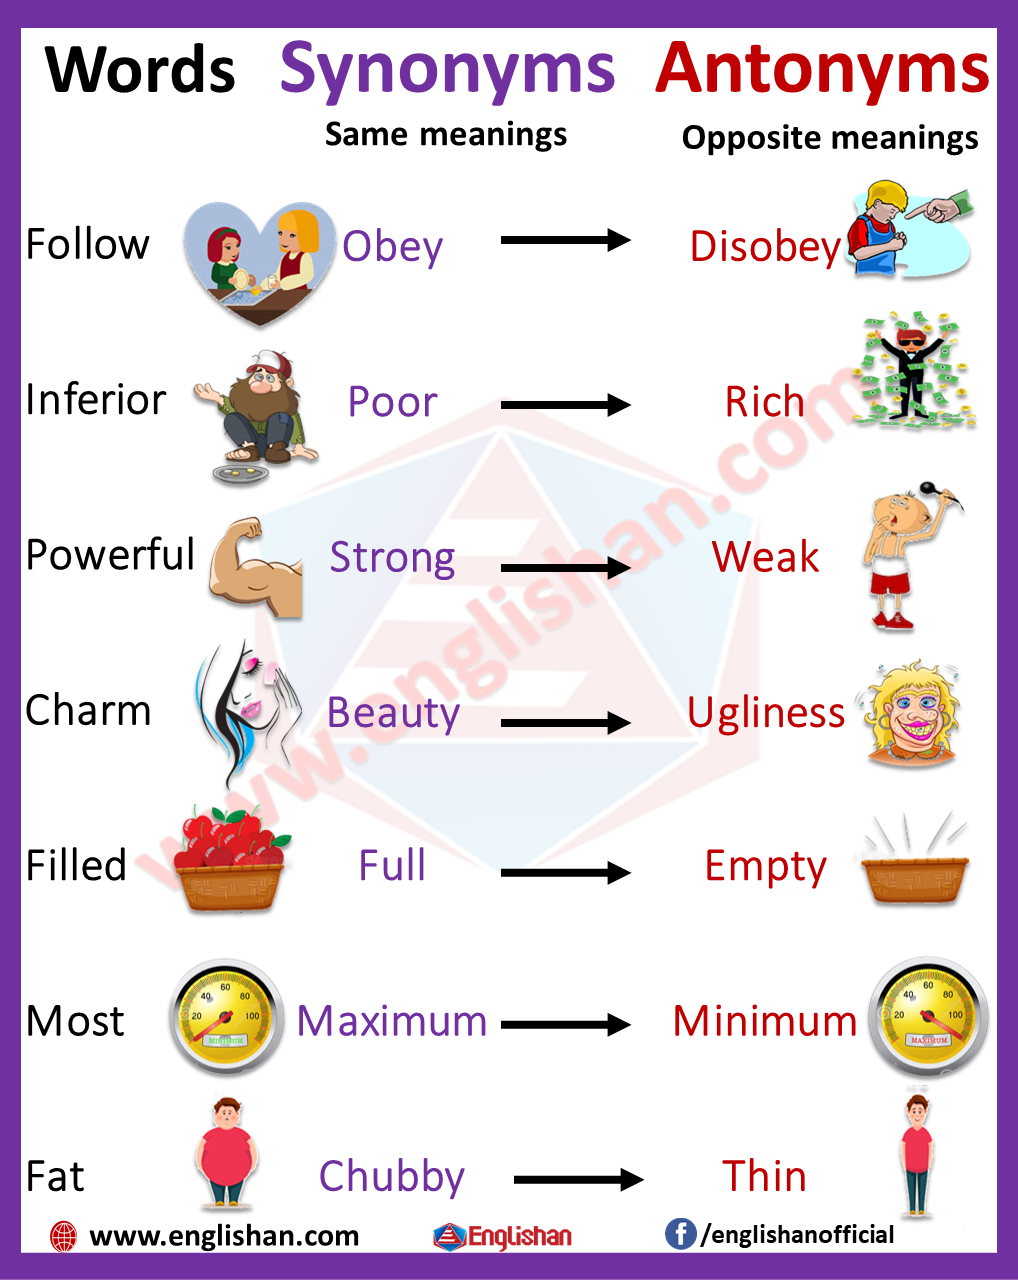 50 Words With Synonyms And Antonyms For Kids Synonyms And Antonyms Antonyms Hindi Poems For Kids